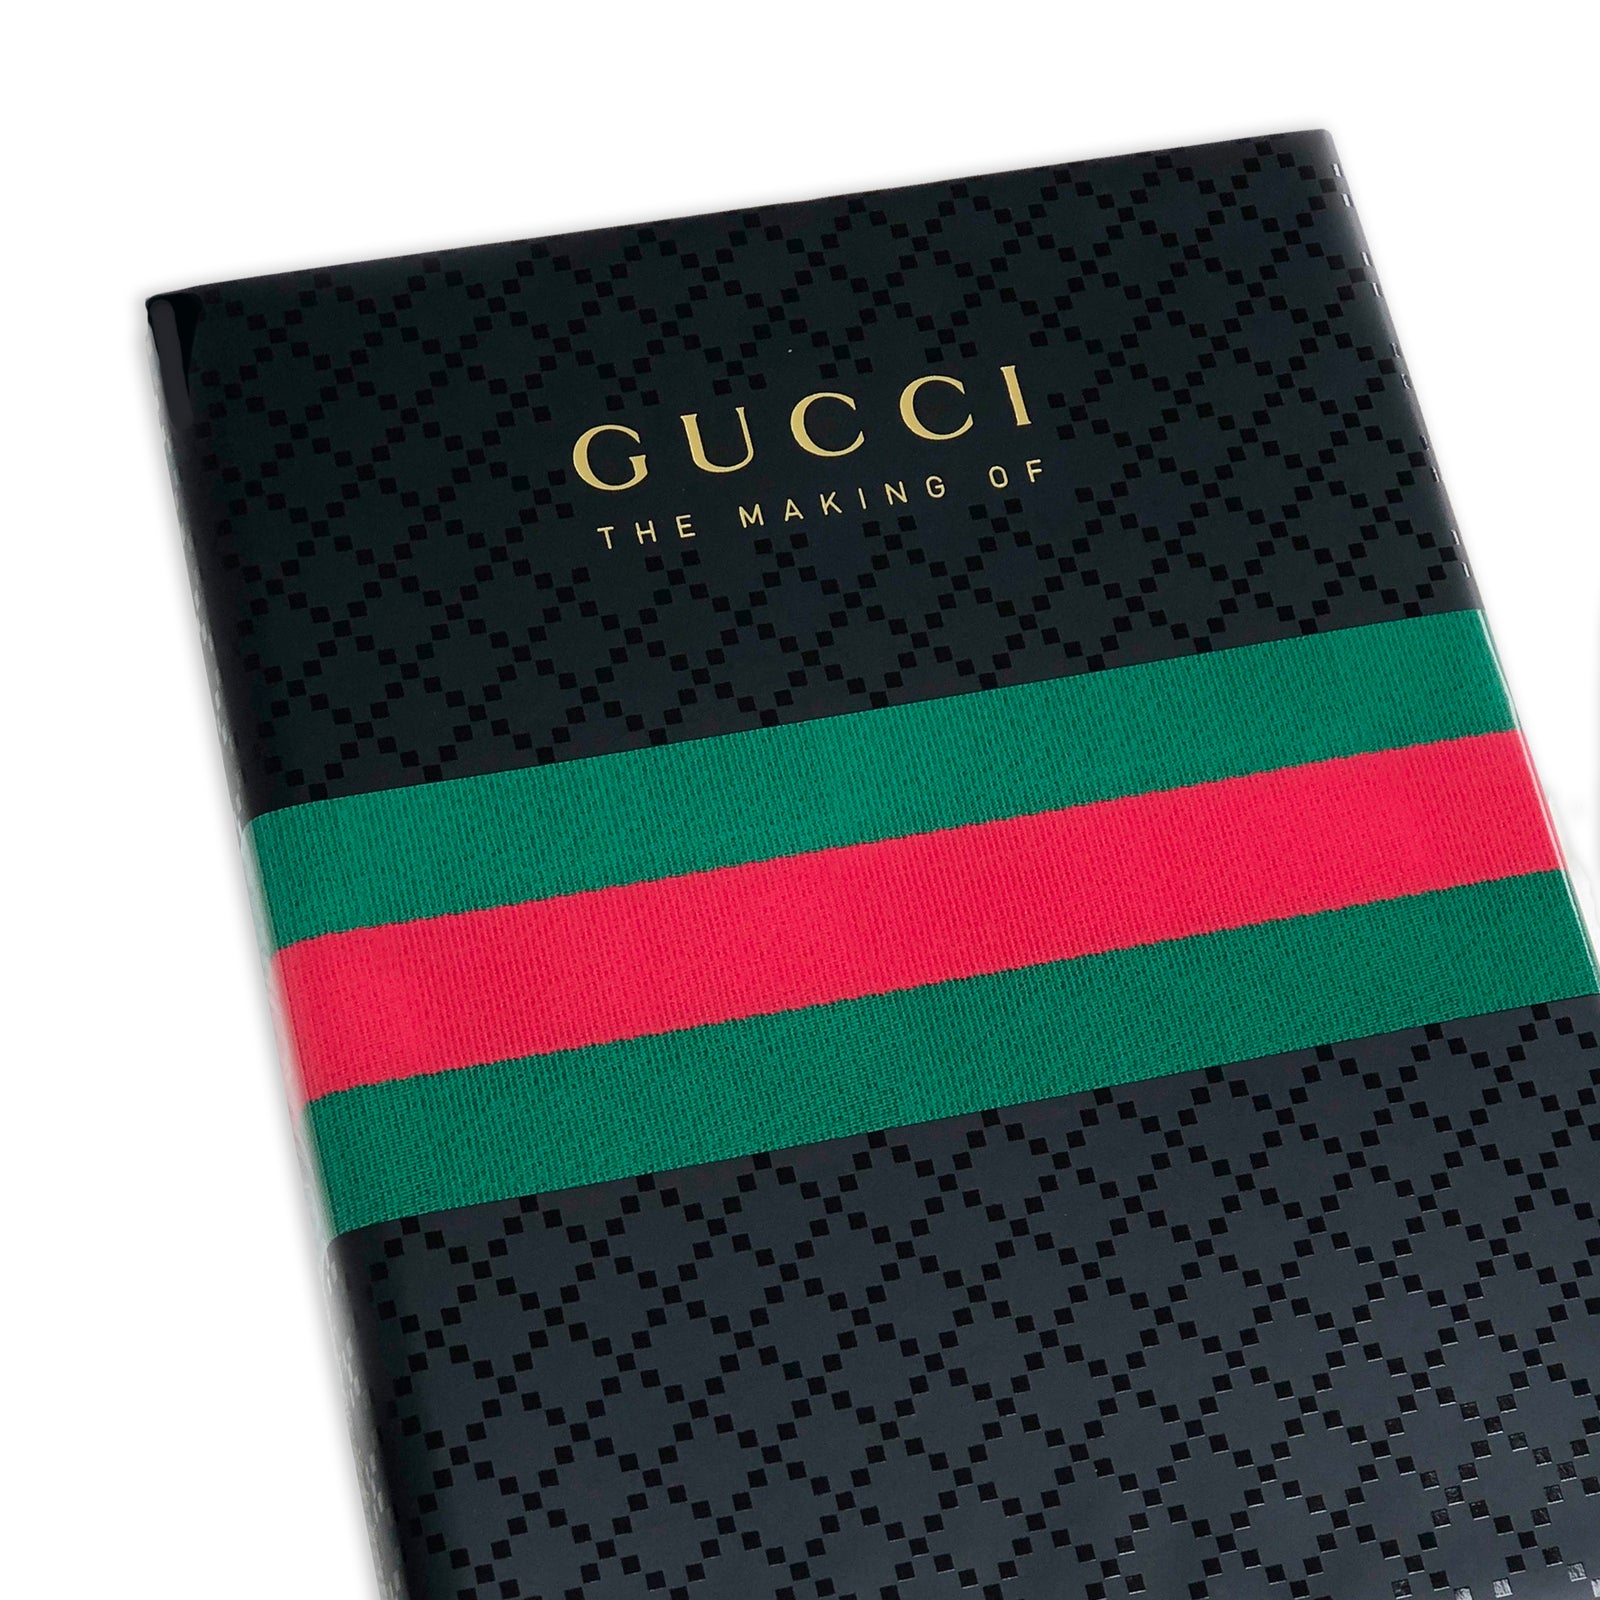 The Making of Gucci - book